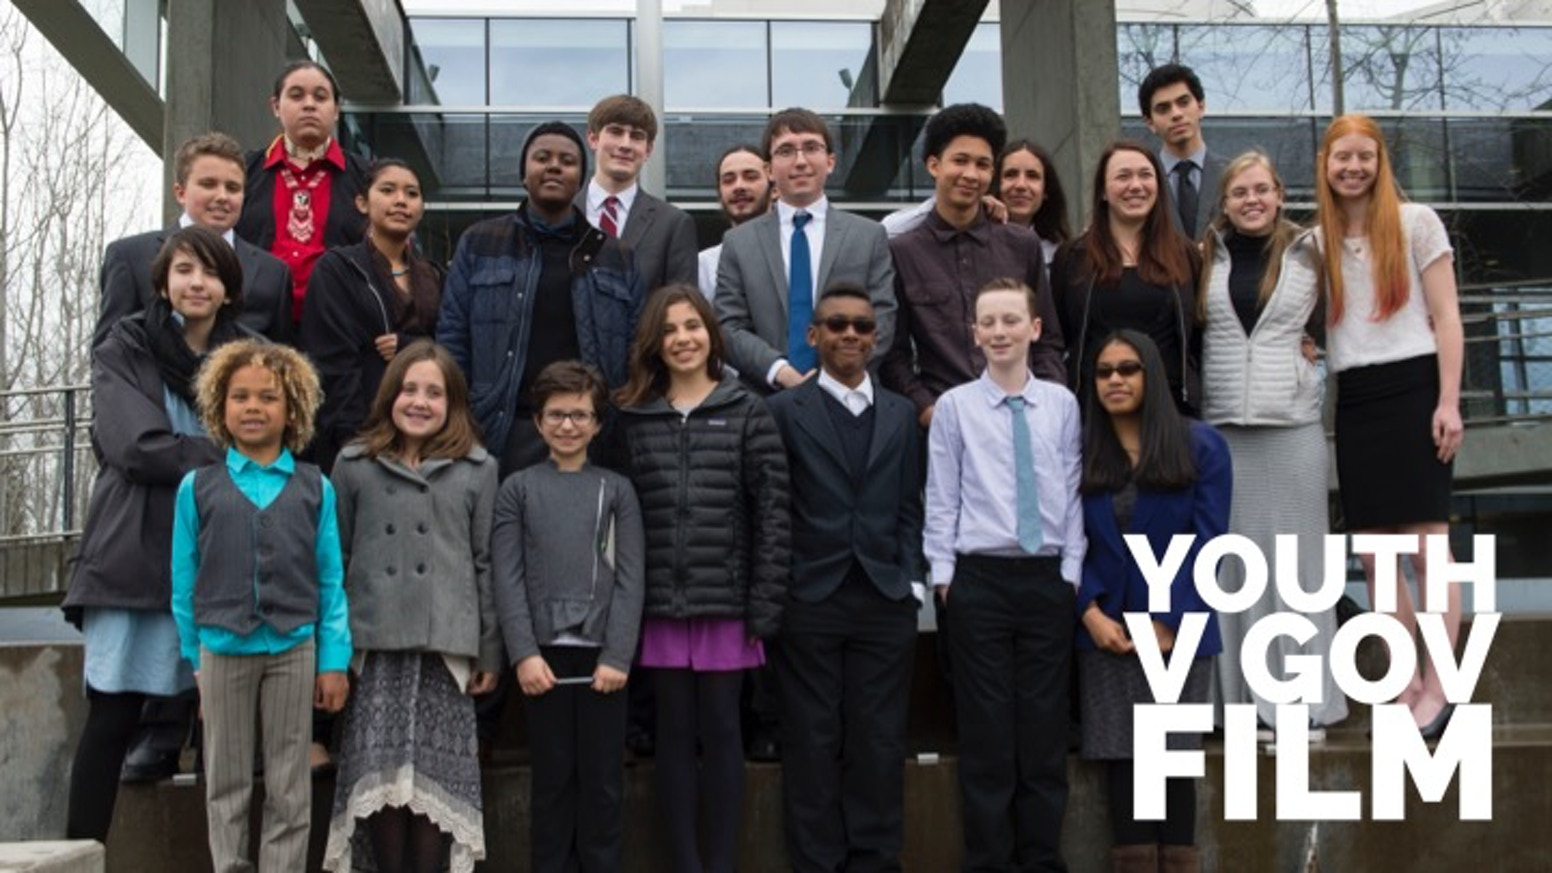 Twenty-one brave youth lead a groundbreaking lawsuit against the U.S. government over their constitutional rights to a healthy climate.